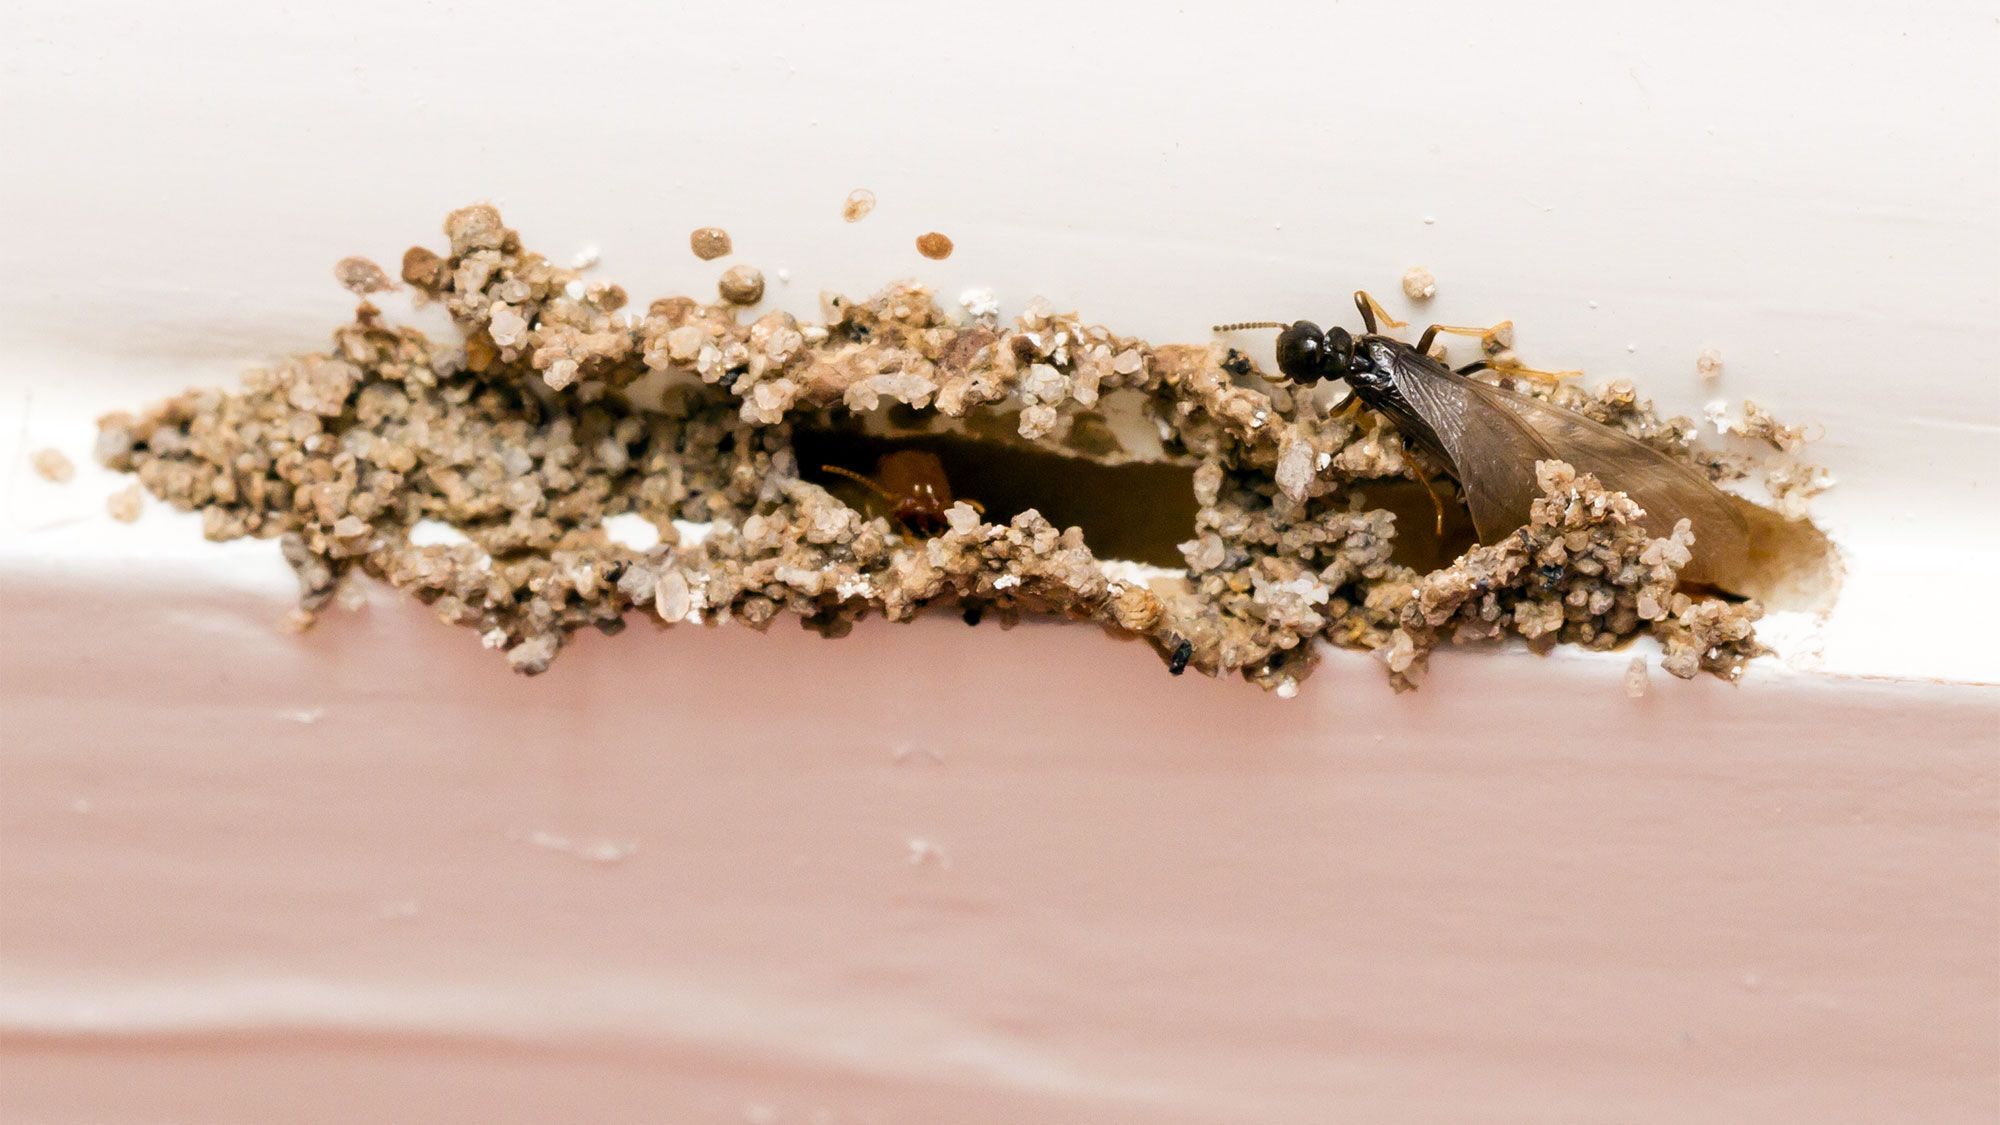 How to Prevent a Termite Infestation Ways to Keep These